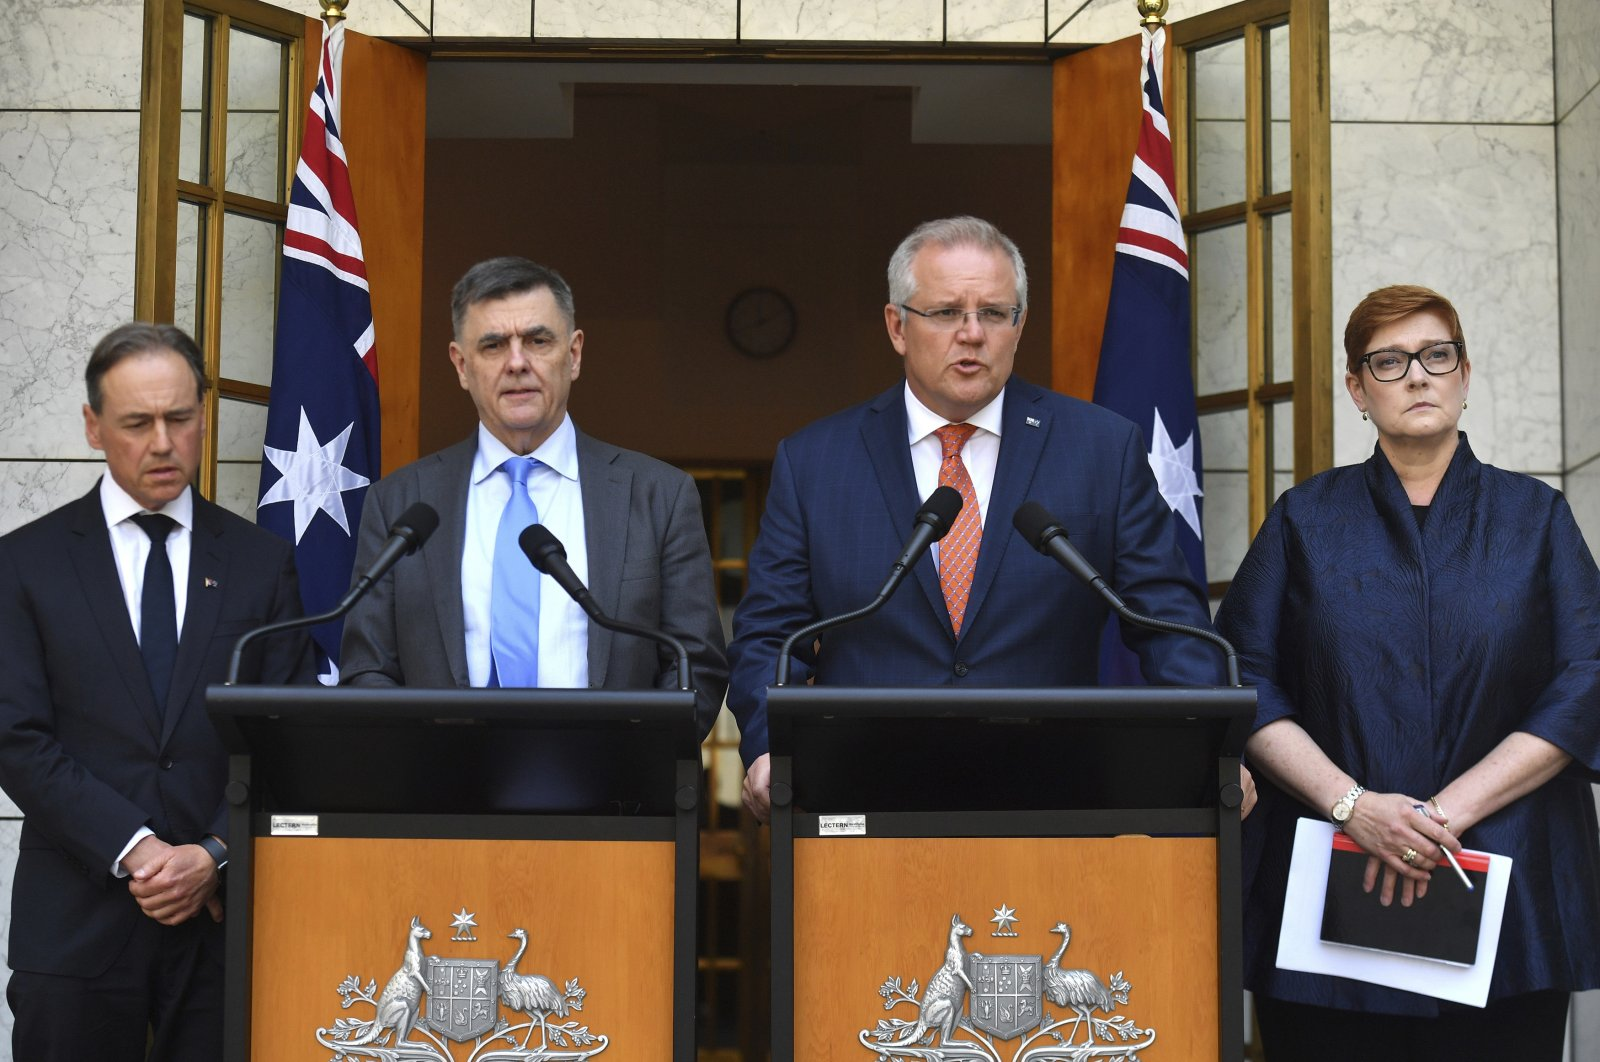 Australian Minister for Health Greg Hunt (L), Chief Medical Officer Brendan Murphy (2nd from L), Prime Minister Scott Morrison (2nd from R) and Minister for Foreign Affairs Marise Payne (R), give an update on the coronavirus at a news conference at Parliament House in Canberra, Australia, Jan. 29, 2020. (AP Photo)